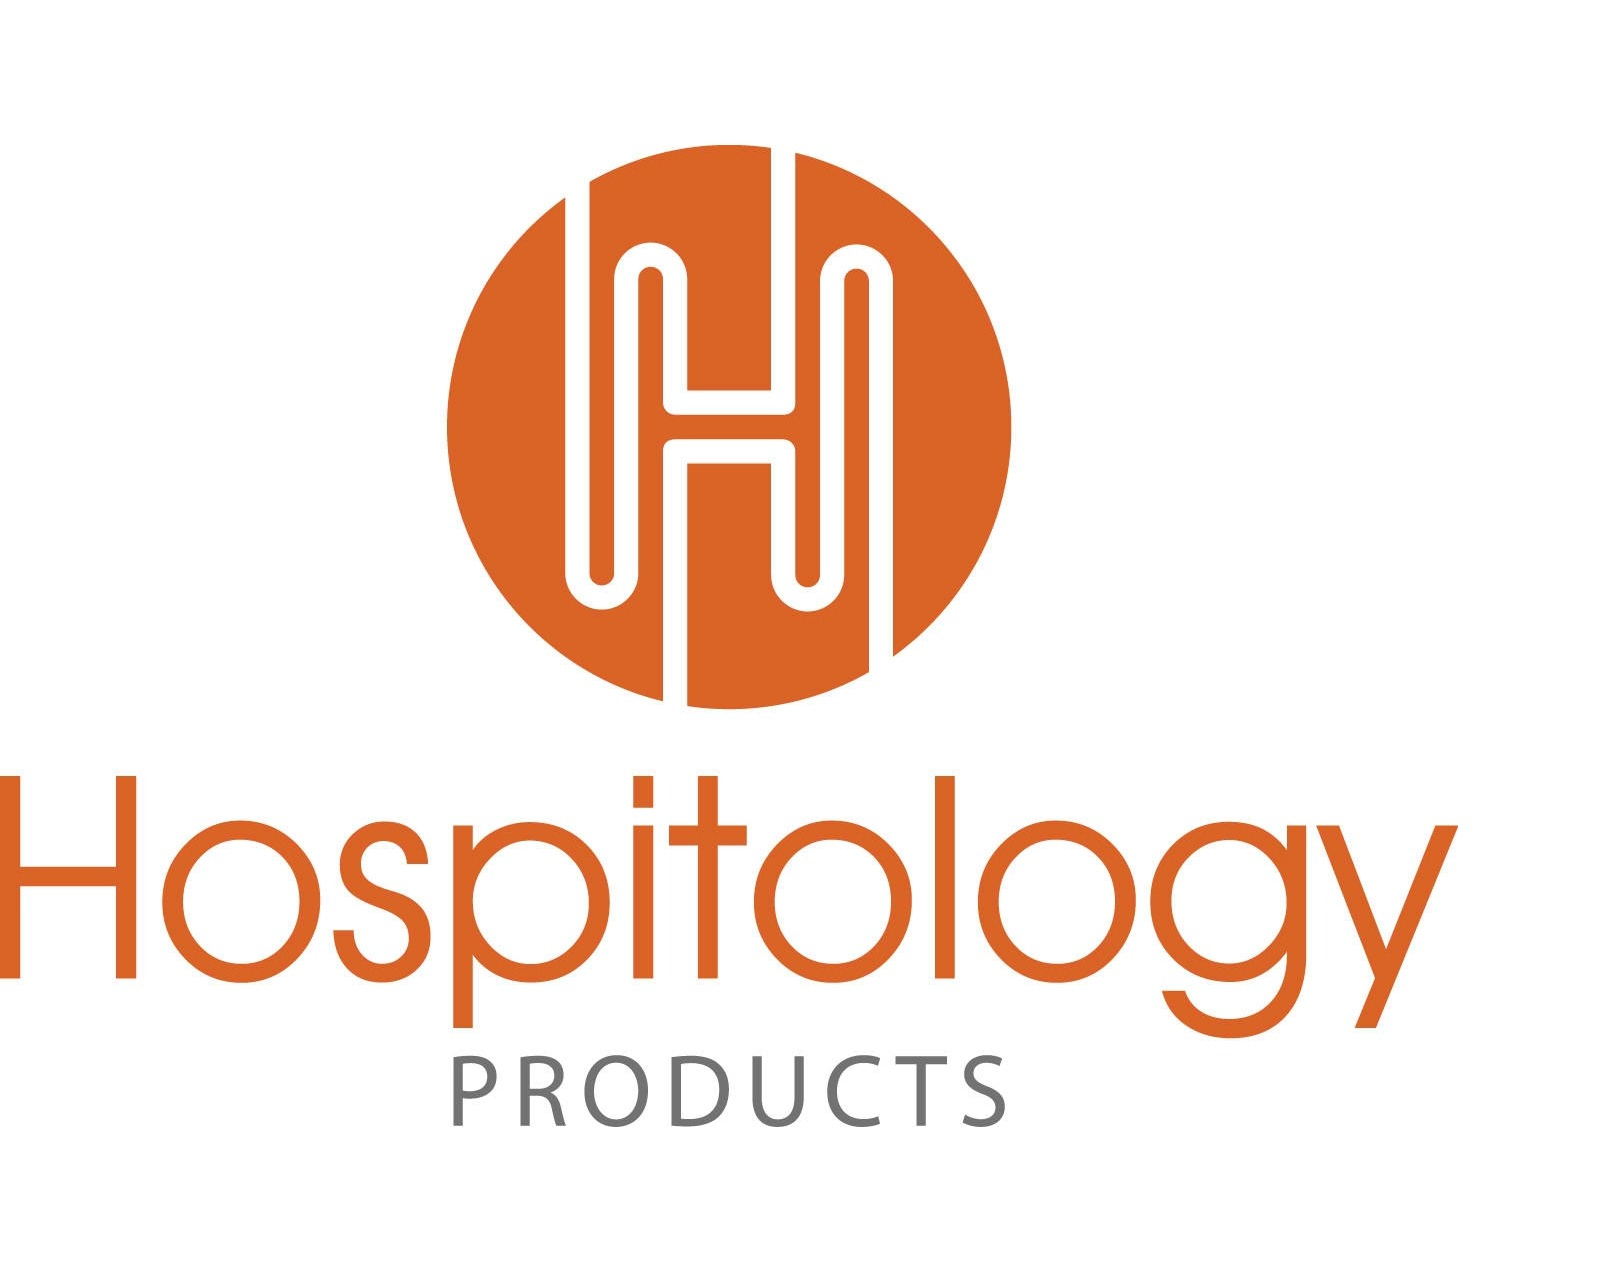 Hospitology coupon code